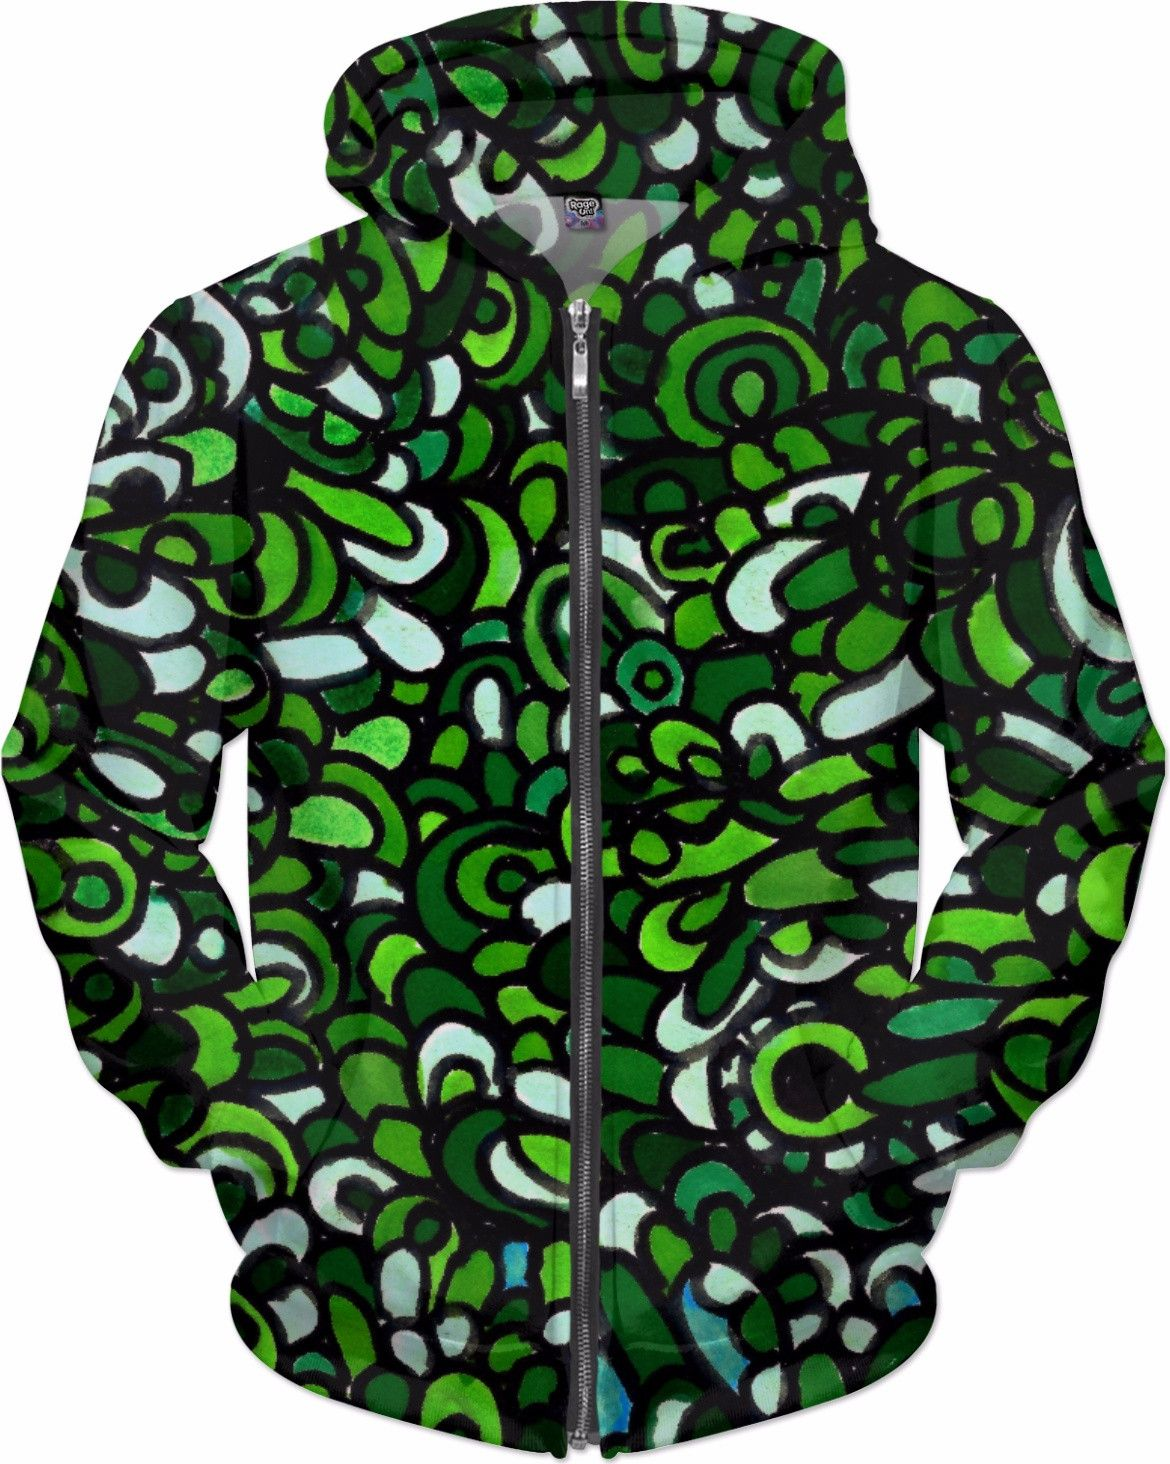 Check out my new product https://www.rageon.com/products/into-the-forest-by-wbk?aff=B5WO on RageOn!